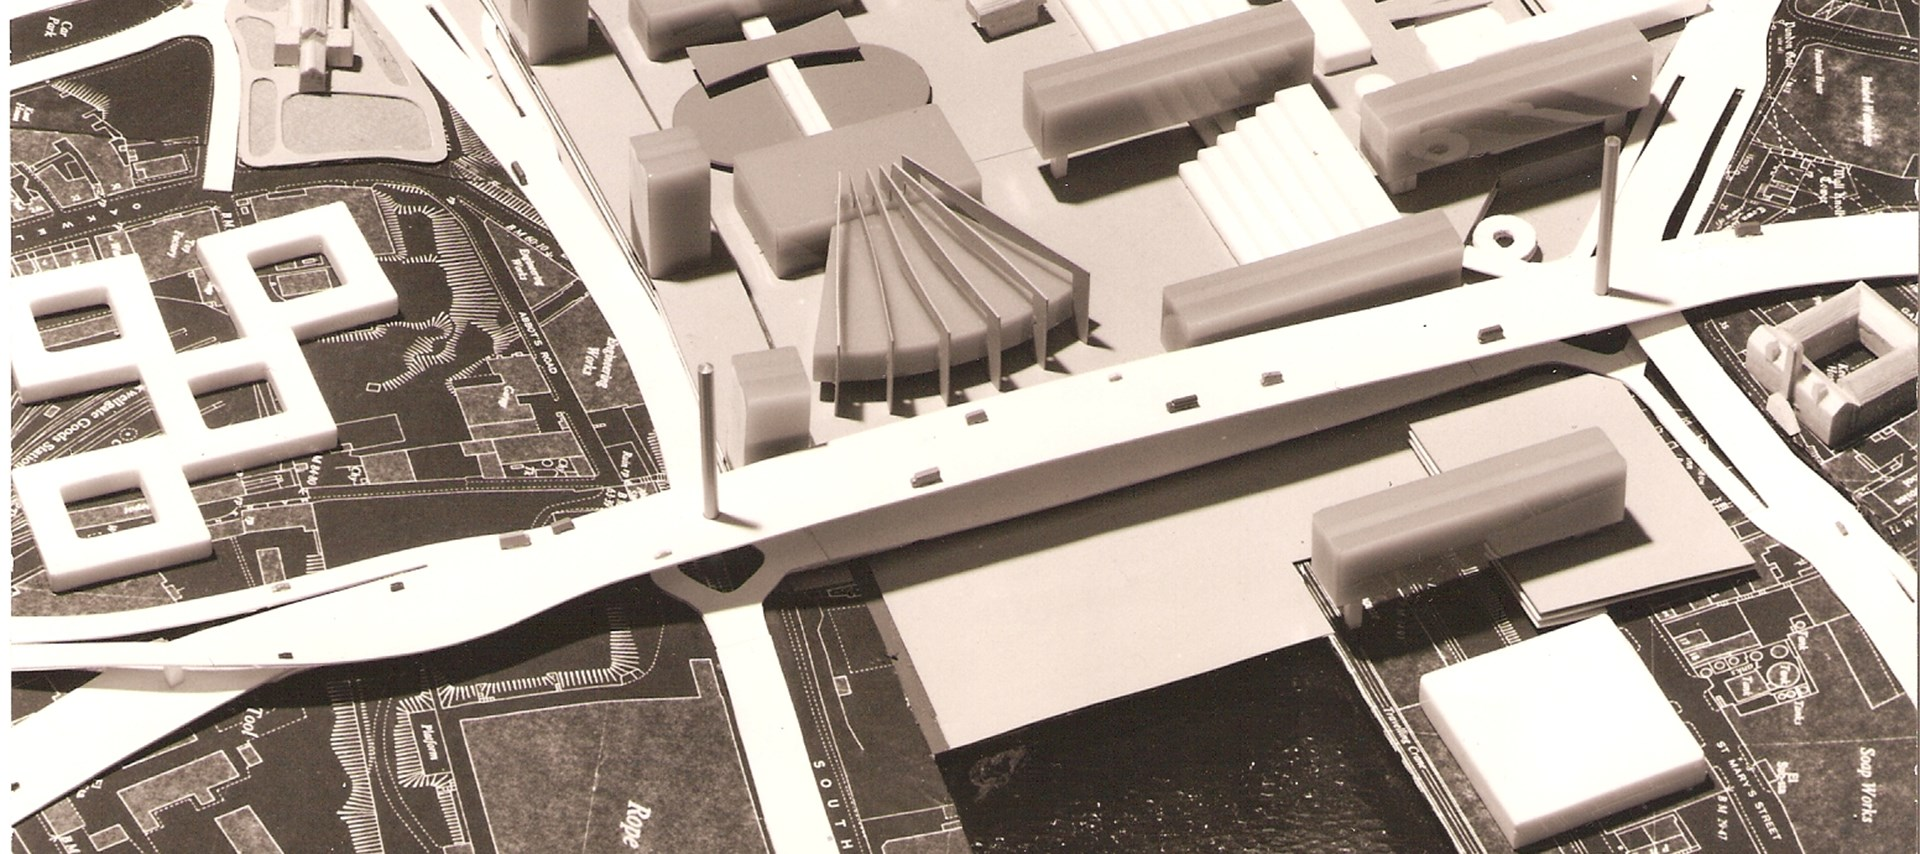 Model of the Tyne Deck proposal, 1969, Ryder and Yates (courtesy Ryder)